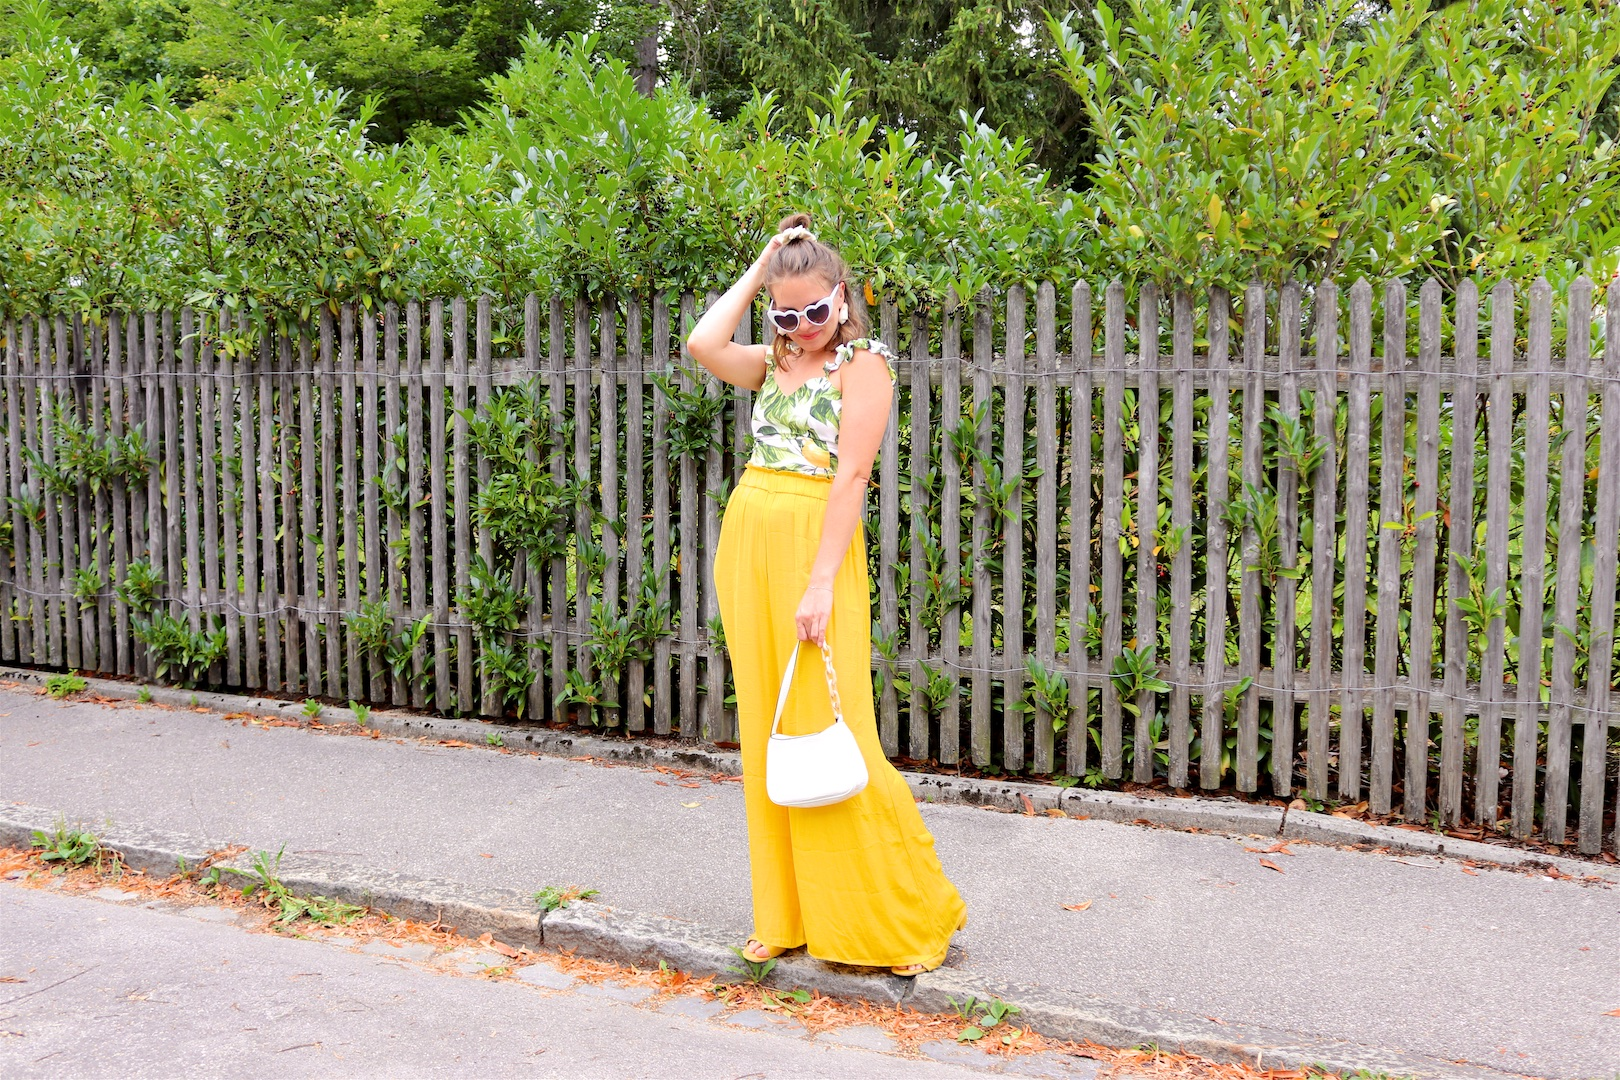 Yellow Lemon Print. Fashion Blogger Girl by Style Blog Heartfelt Hunt. Girl with blond half-up half-down messy bun and scrunchie wearing a yellow pants, lemon print top, heart-shaped sunglasses, white bag and yellow sandals.